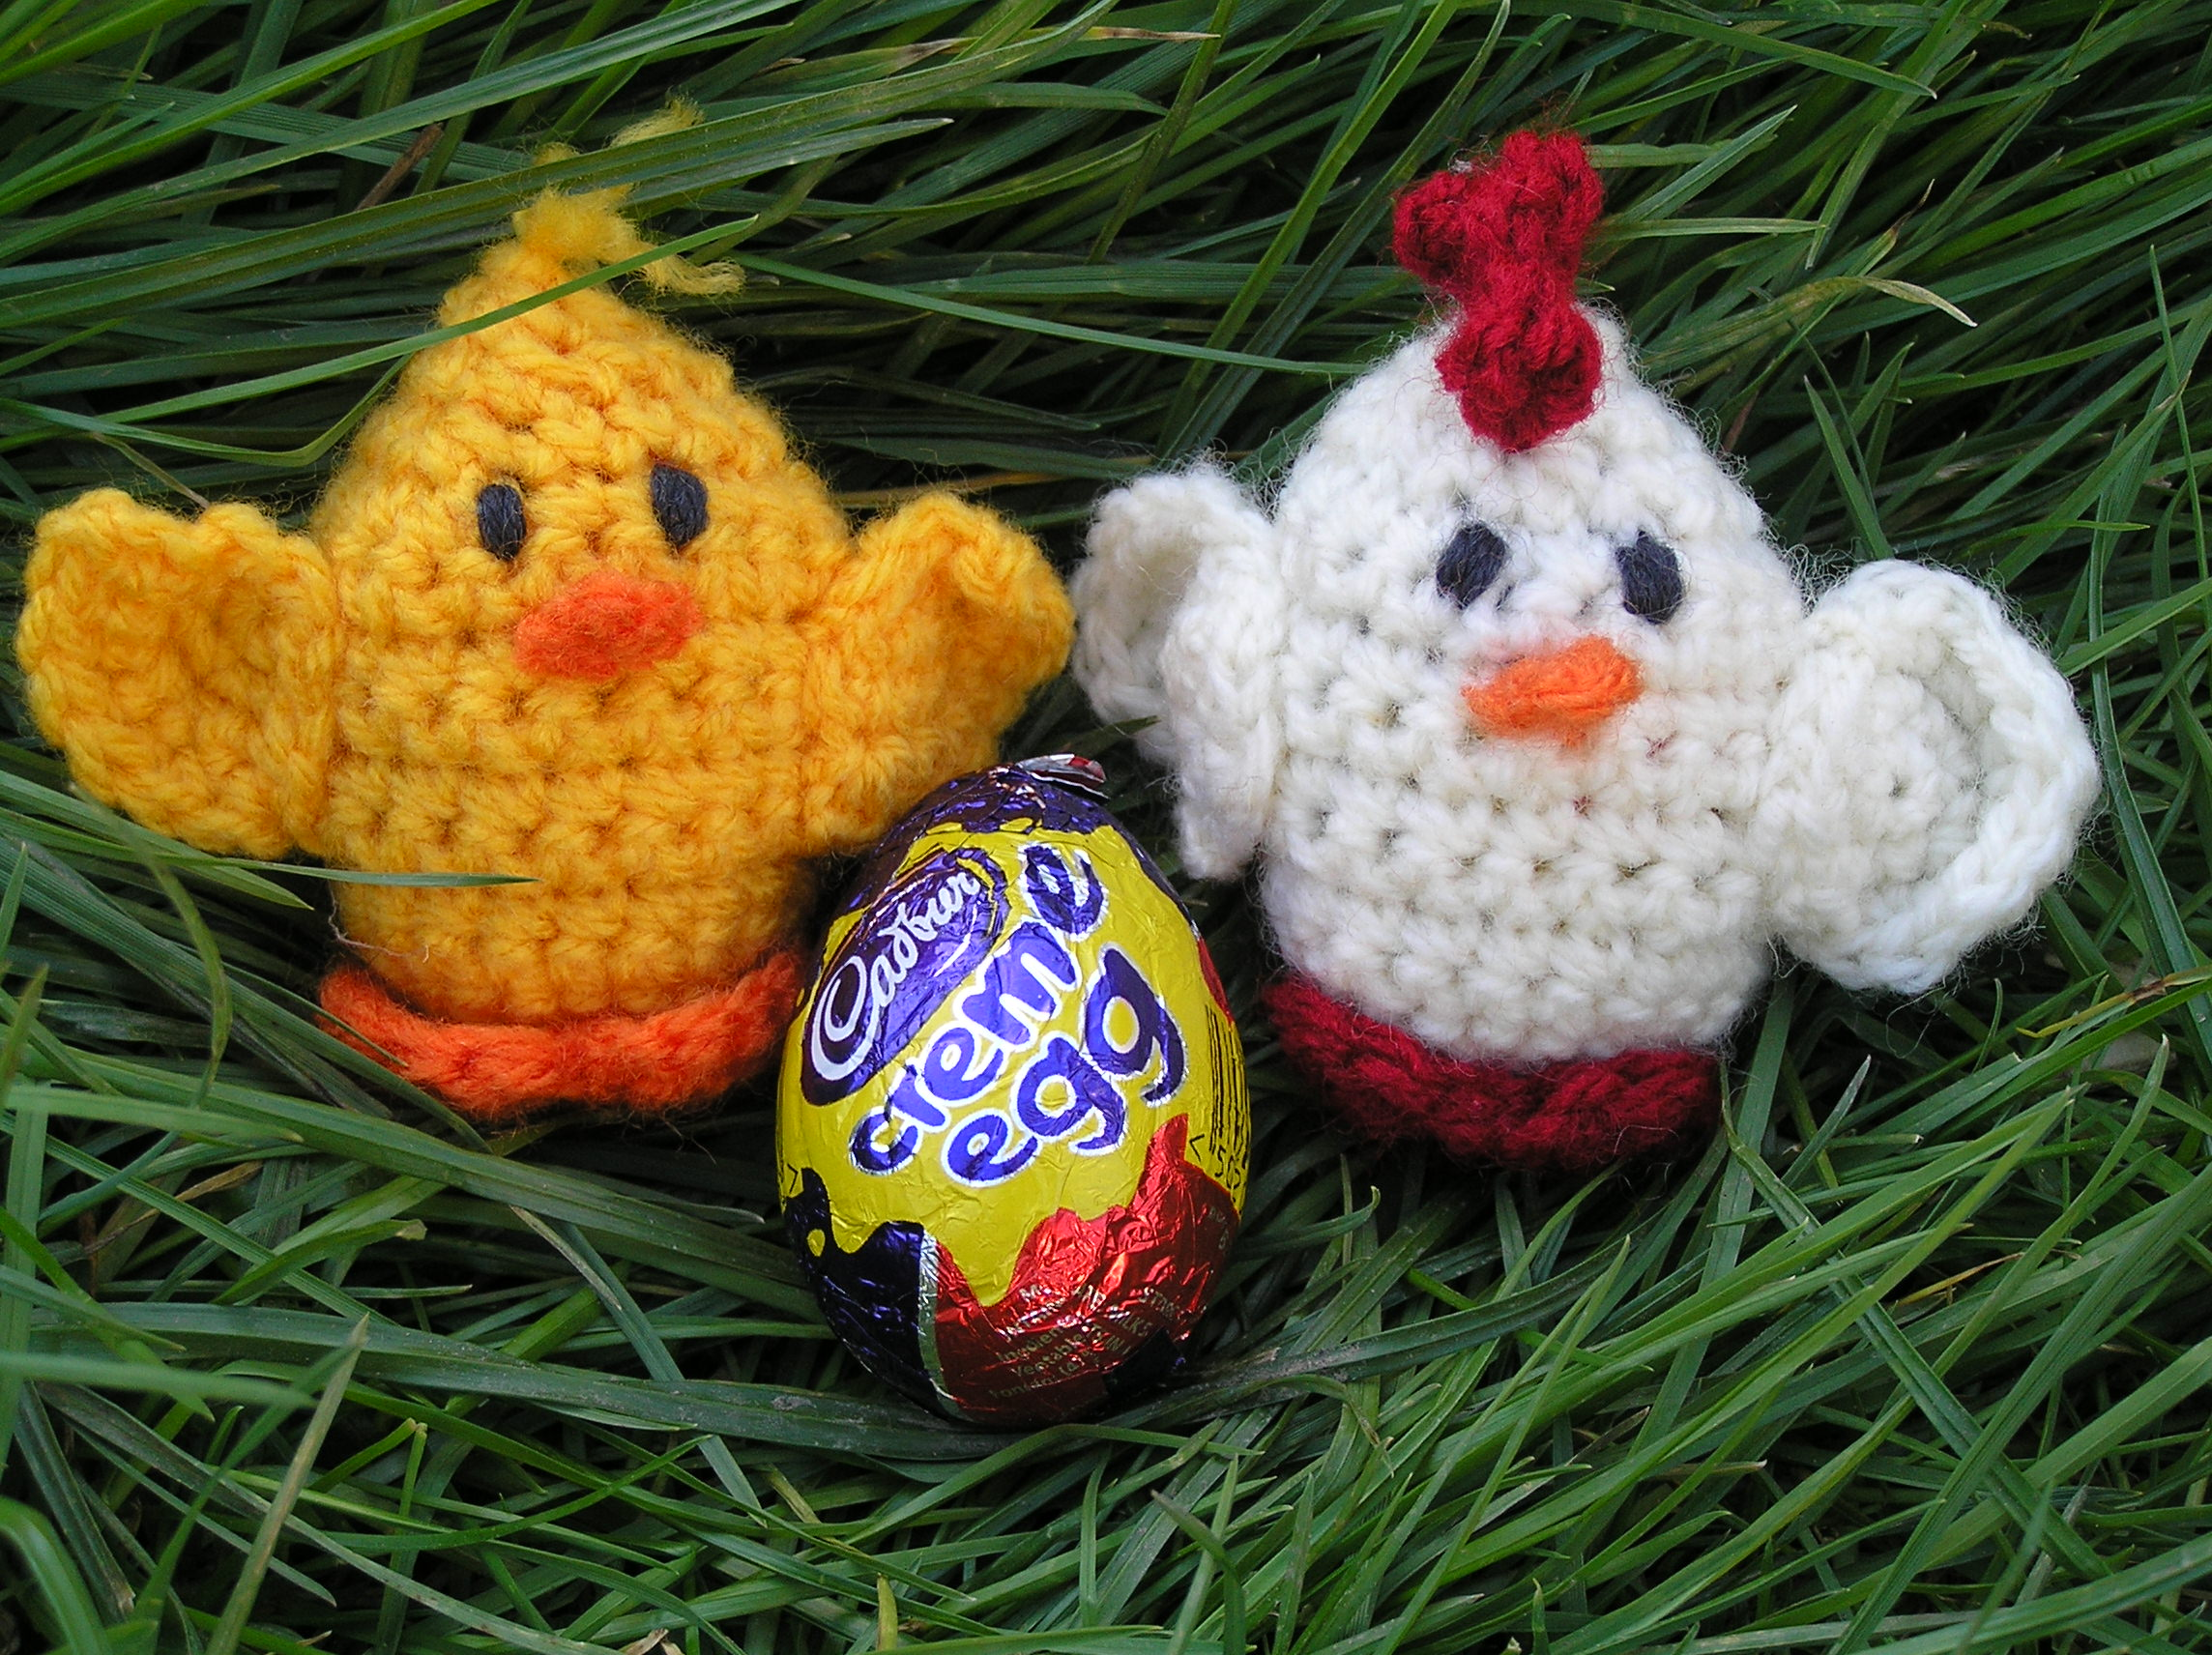 Crochet Patterns Easter : Easter Egg Crochet Pattern - Free Crochet Pattern Courtesy of